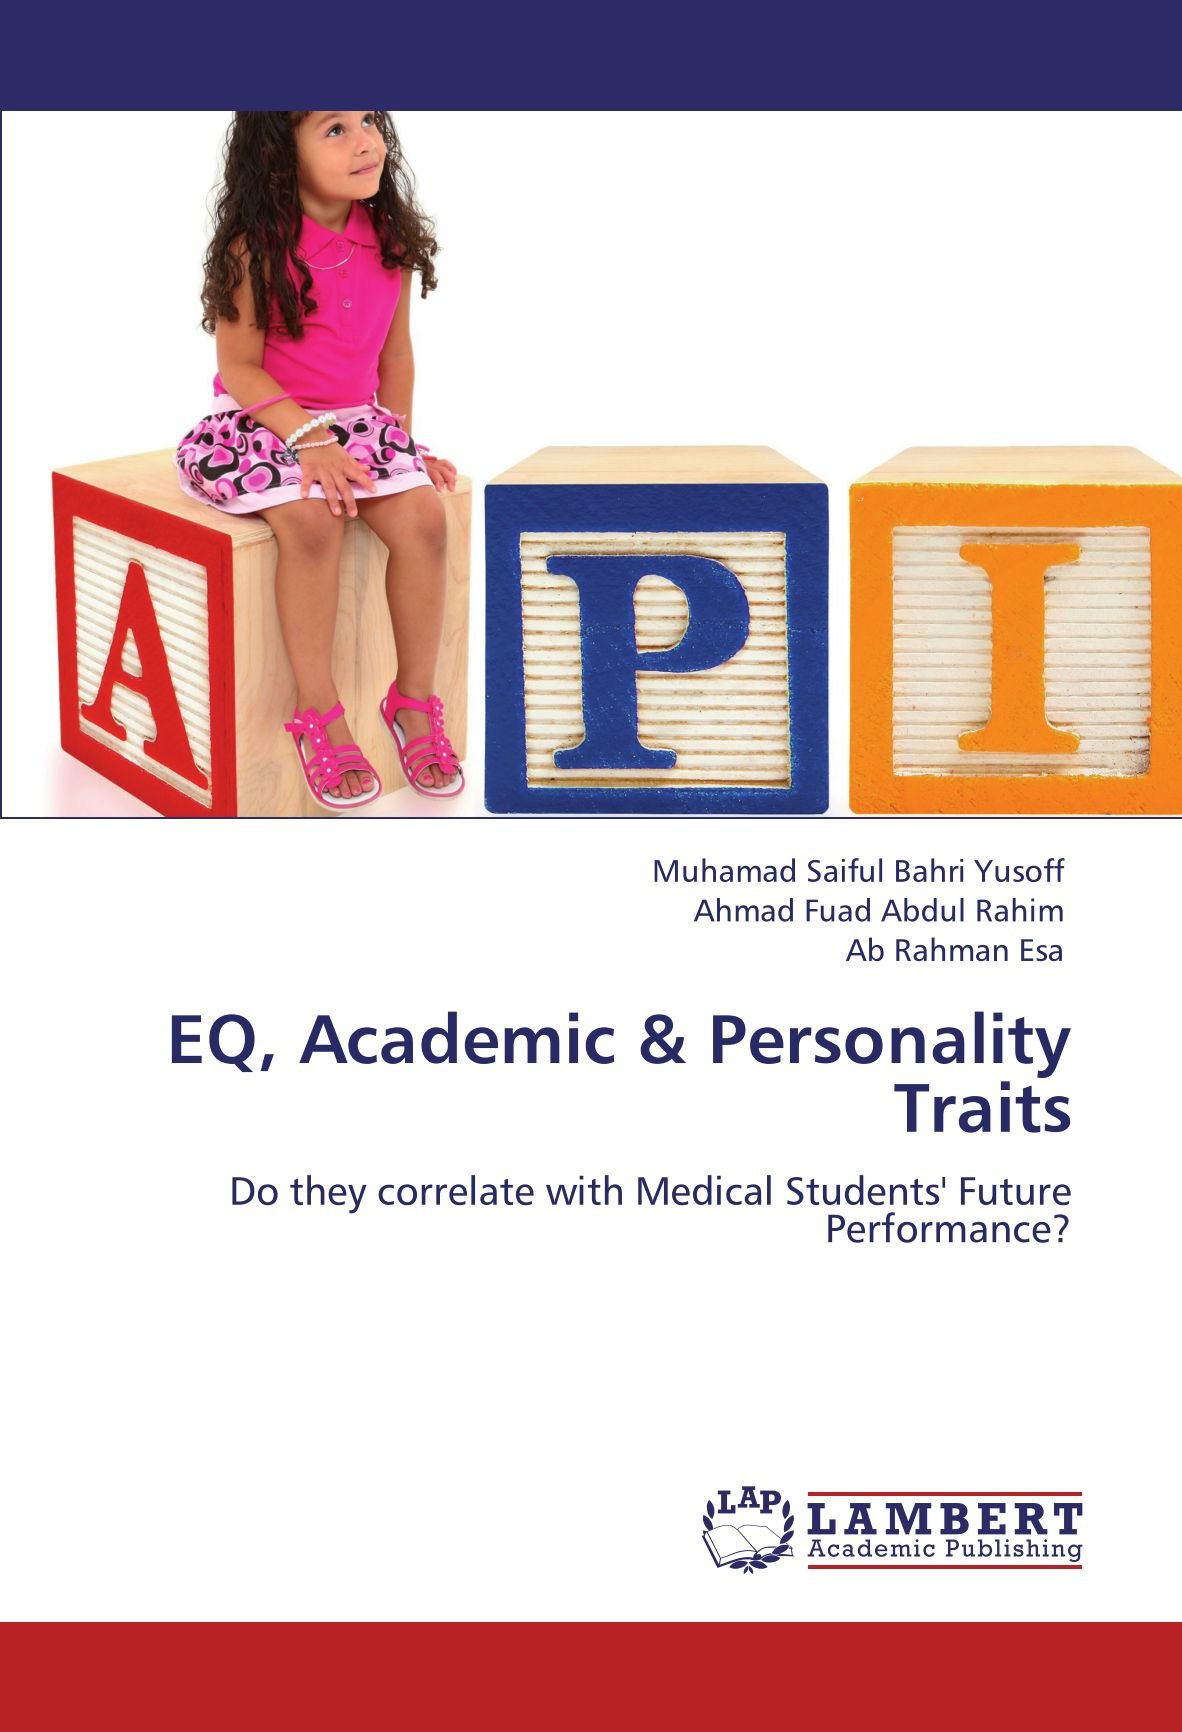 EQ, Academic & Personality Traits: Do they correlate with Medical Students' Future Performance? ebook